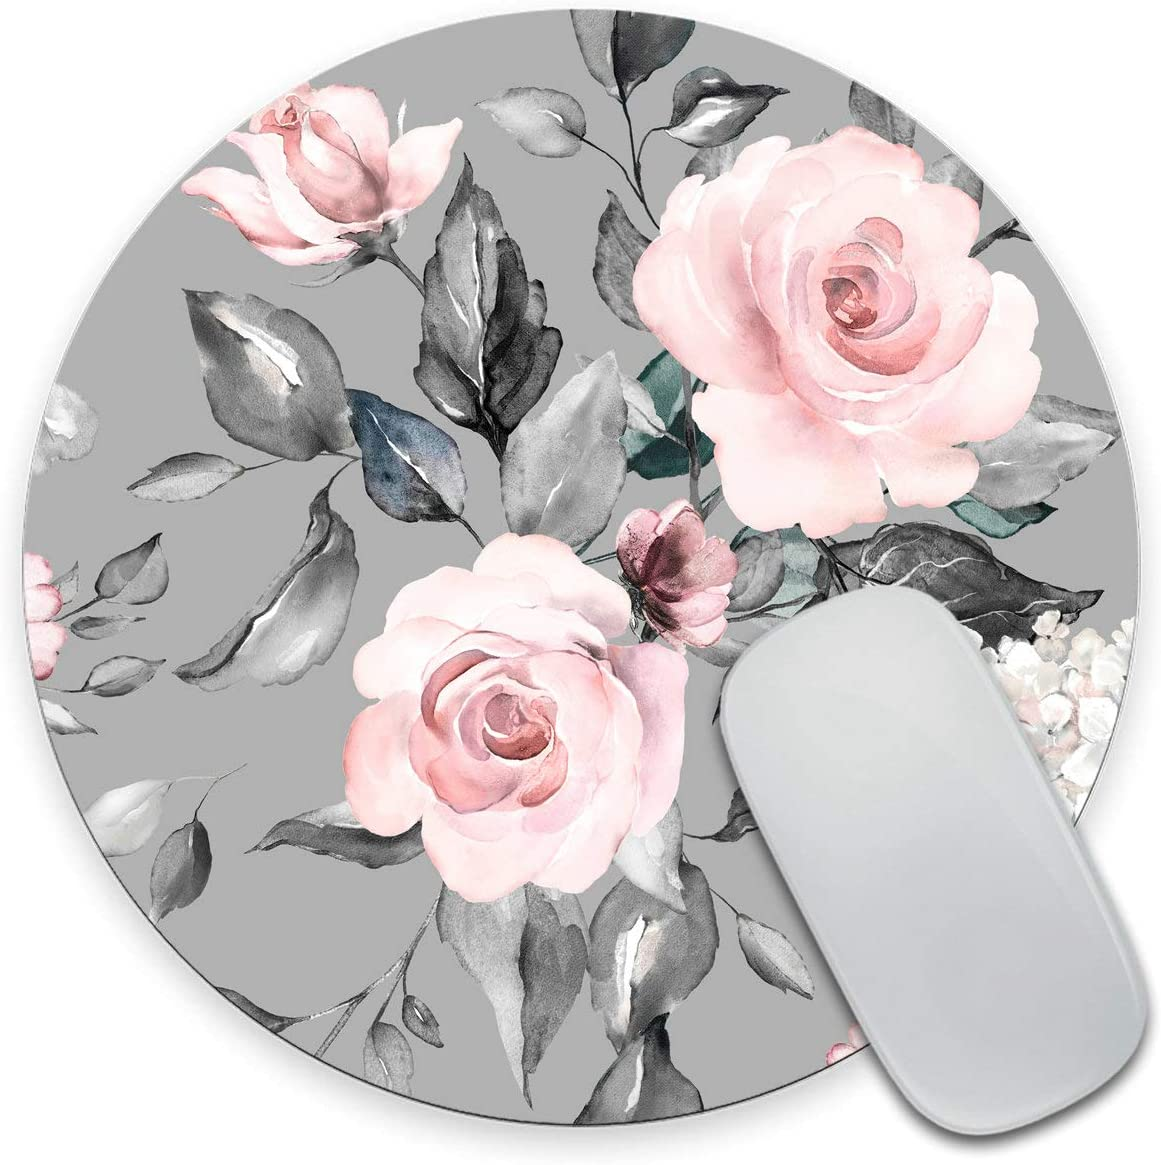 Amcove Spring Flowers Max 63% OFF and Leaves G Mousepad Round SEAL limited product Roses